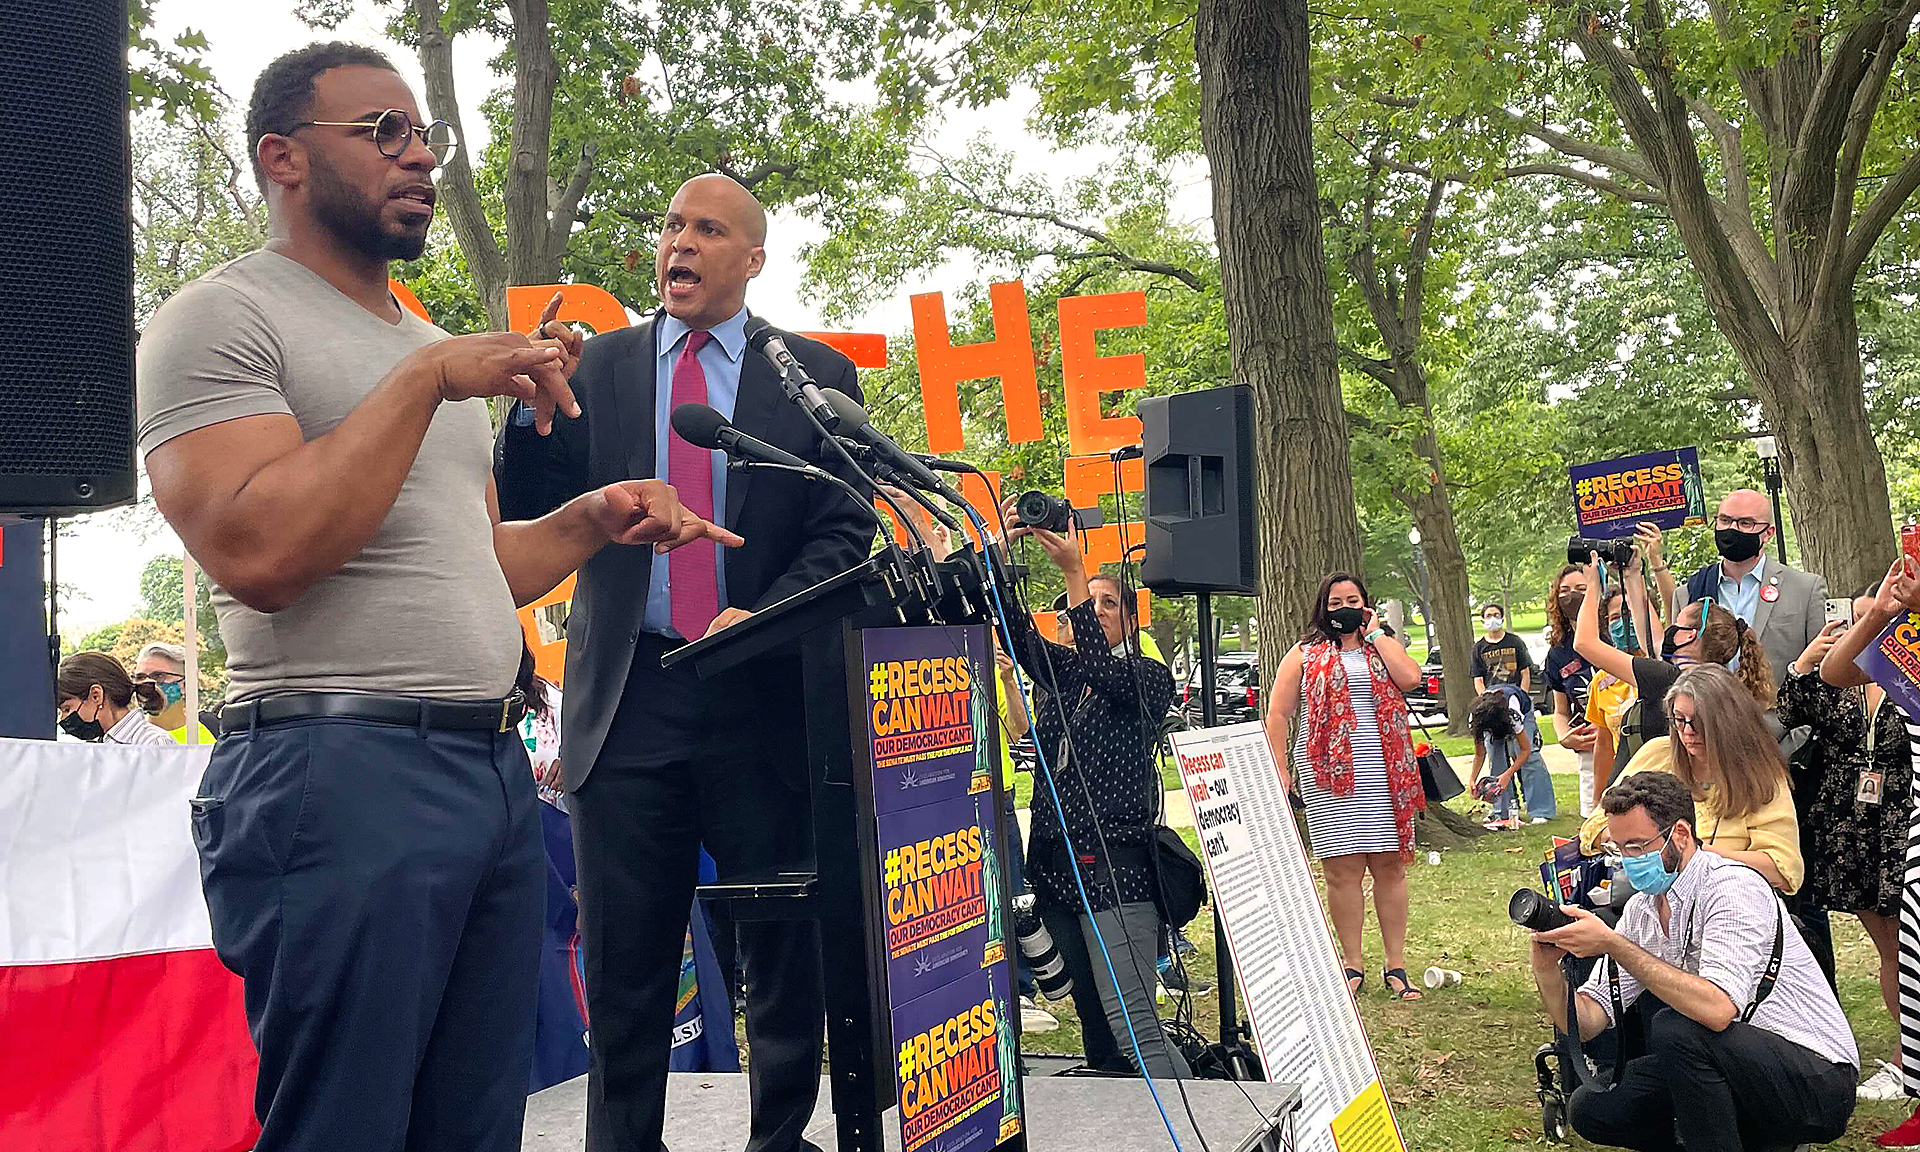 State legislators rallying in D.C. urge Congress to act on voting rights